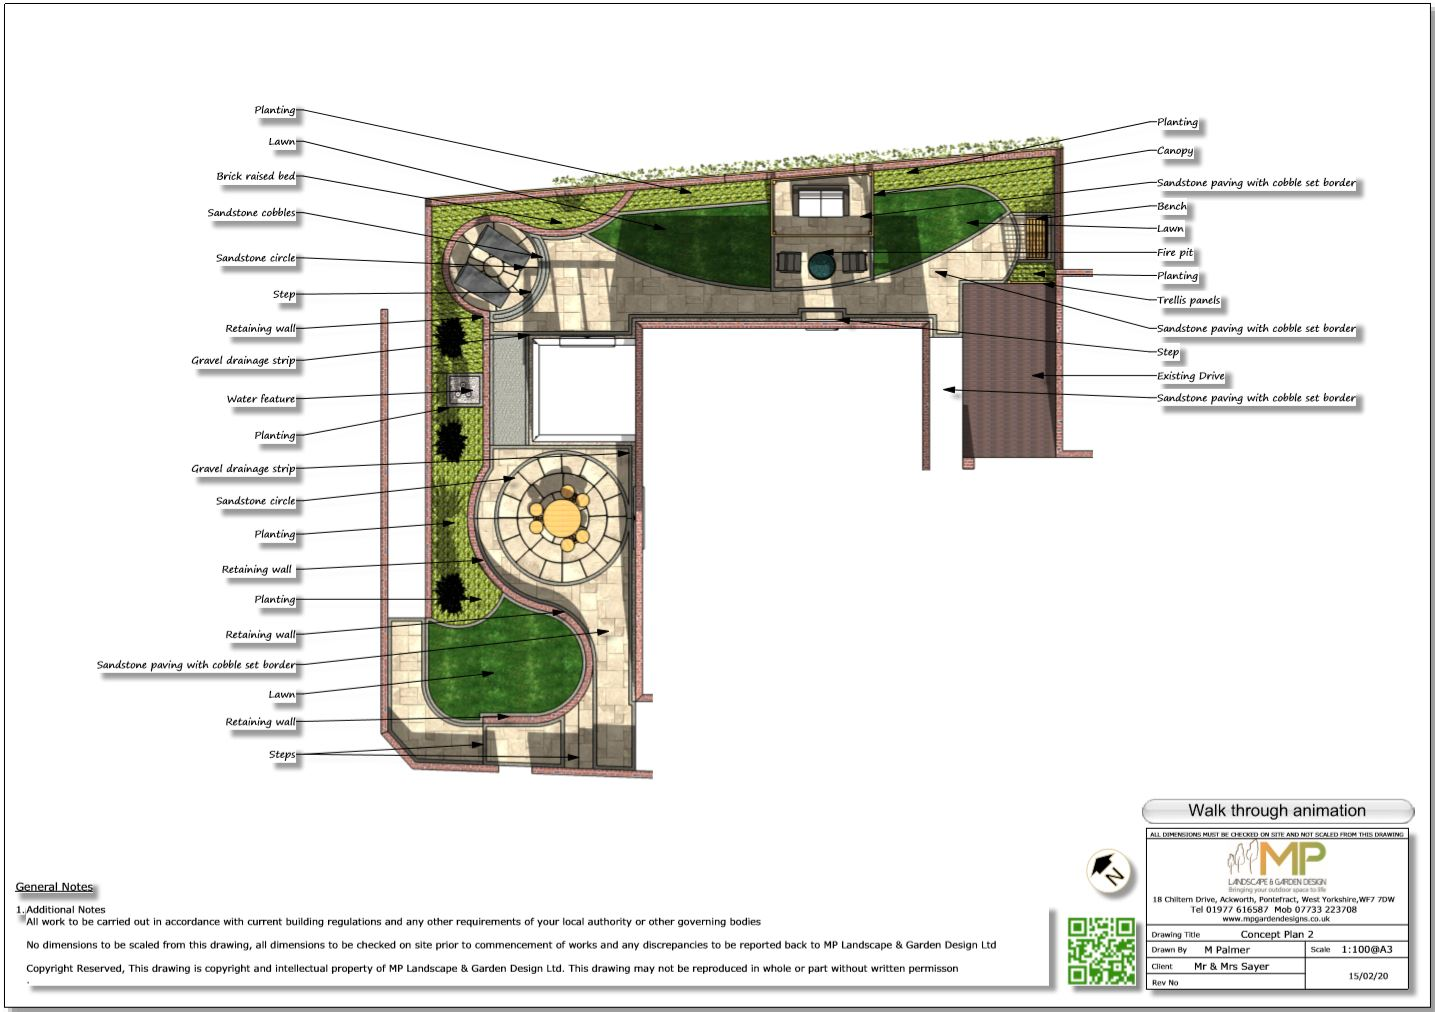 4. Colour concept plan for a property in Castelford.